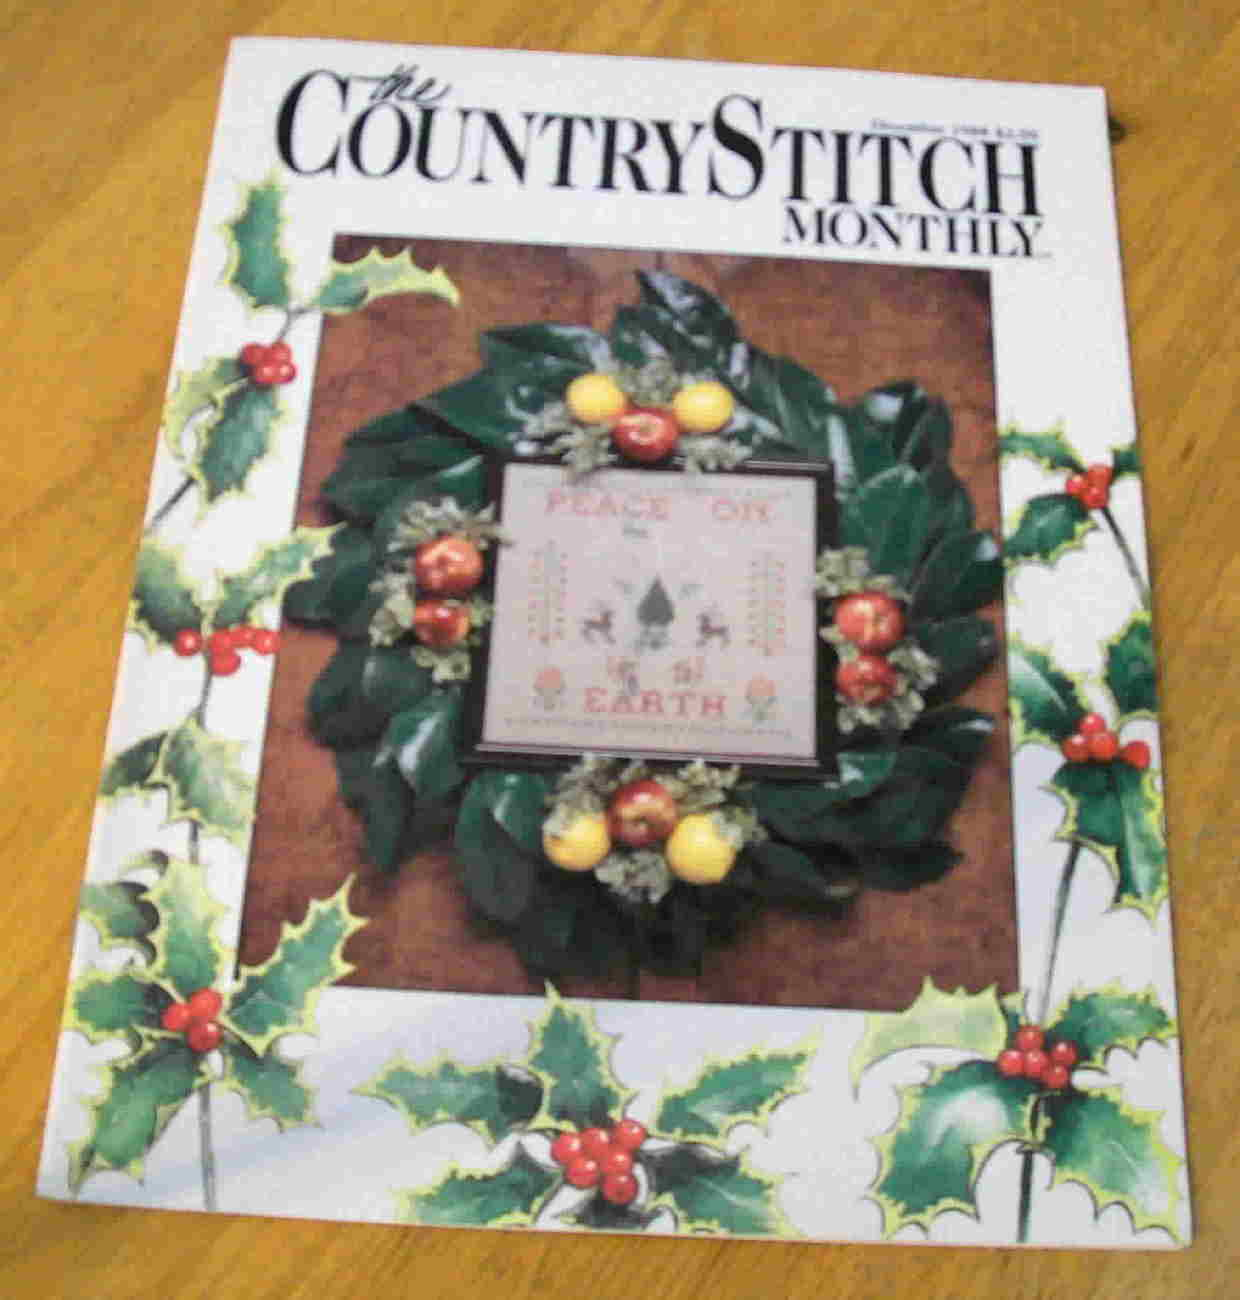 The Country Stitch Monthly, December 1988